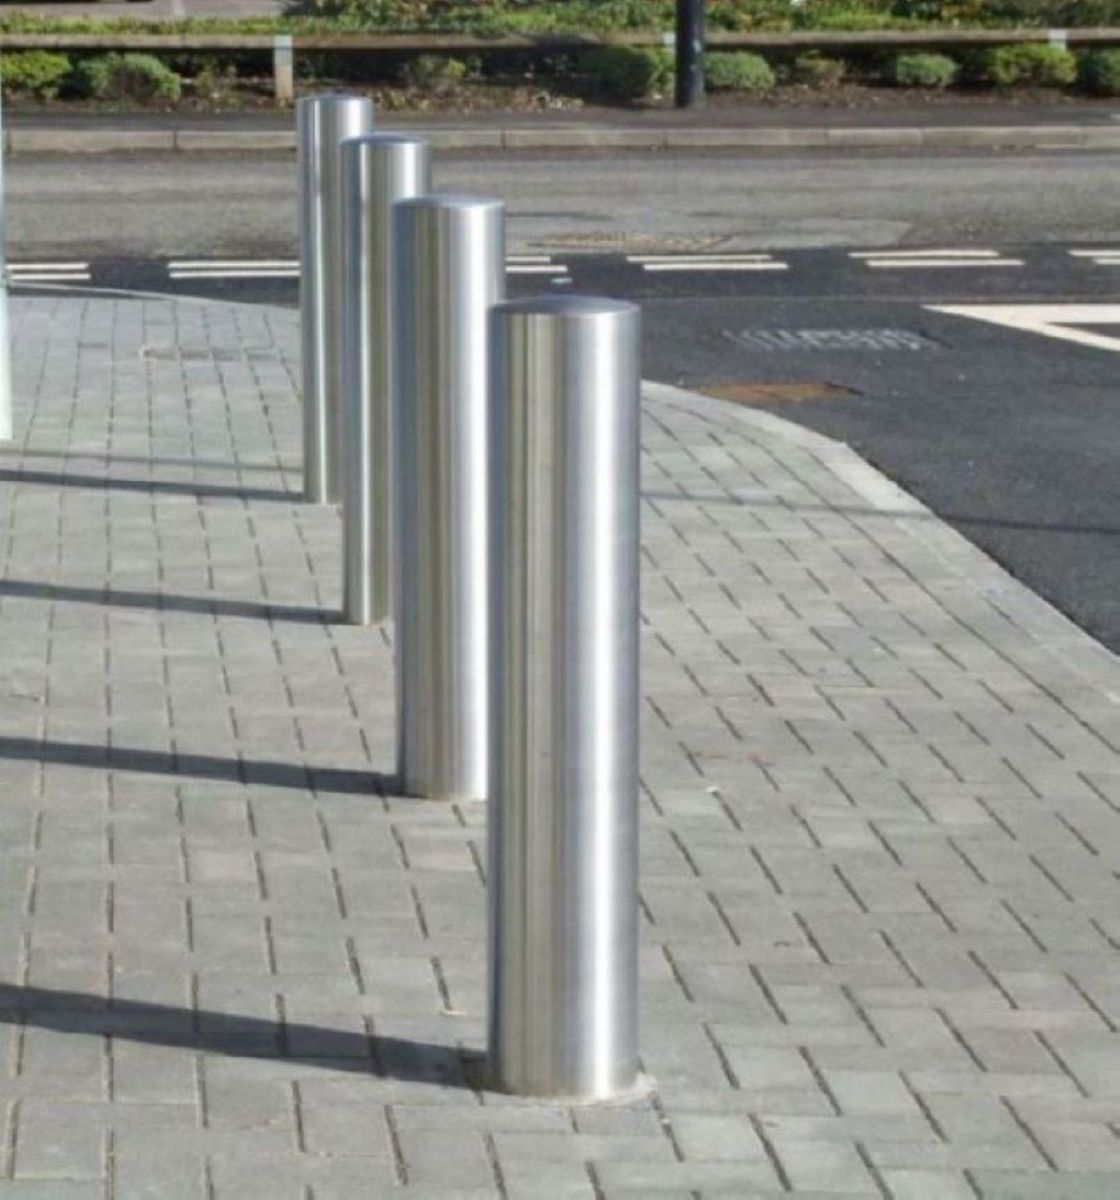 Bollard Stainless Steel Semi Dome – Choice of diameters, thickness 2mm & 1200mm Overall Length - 900mm above -Super Satin finish grade 304 image